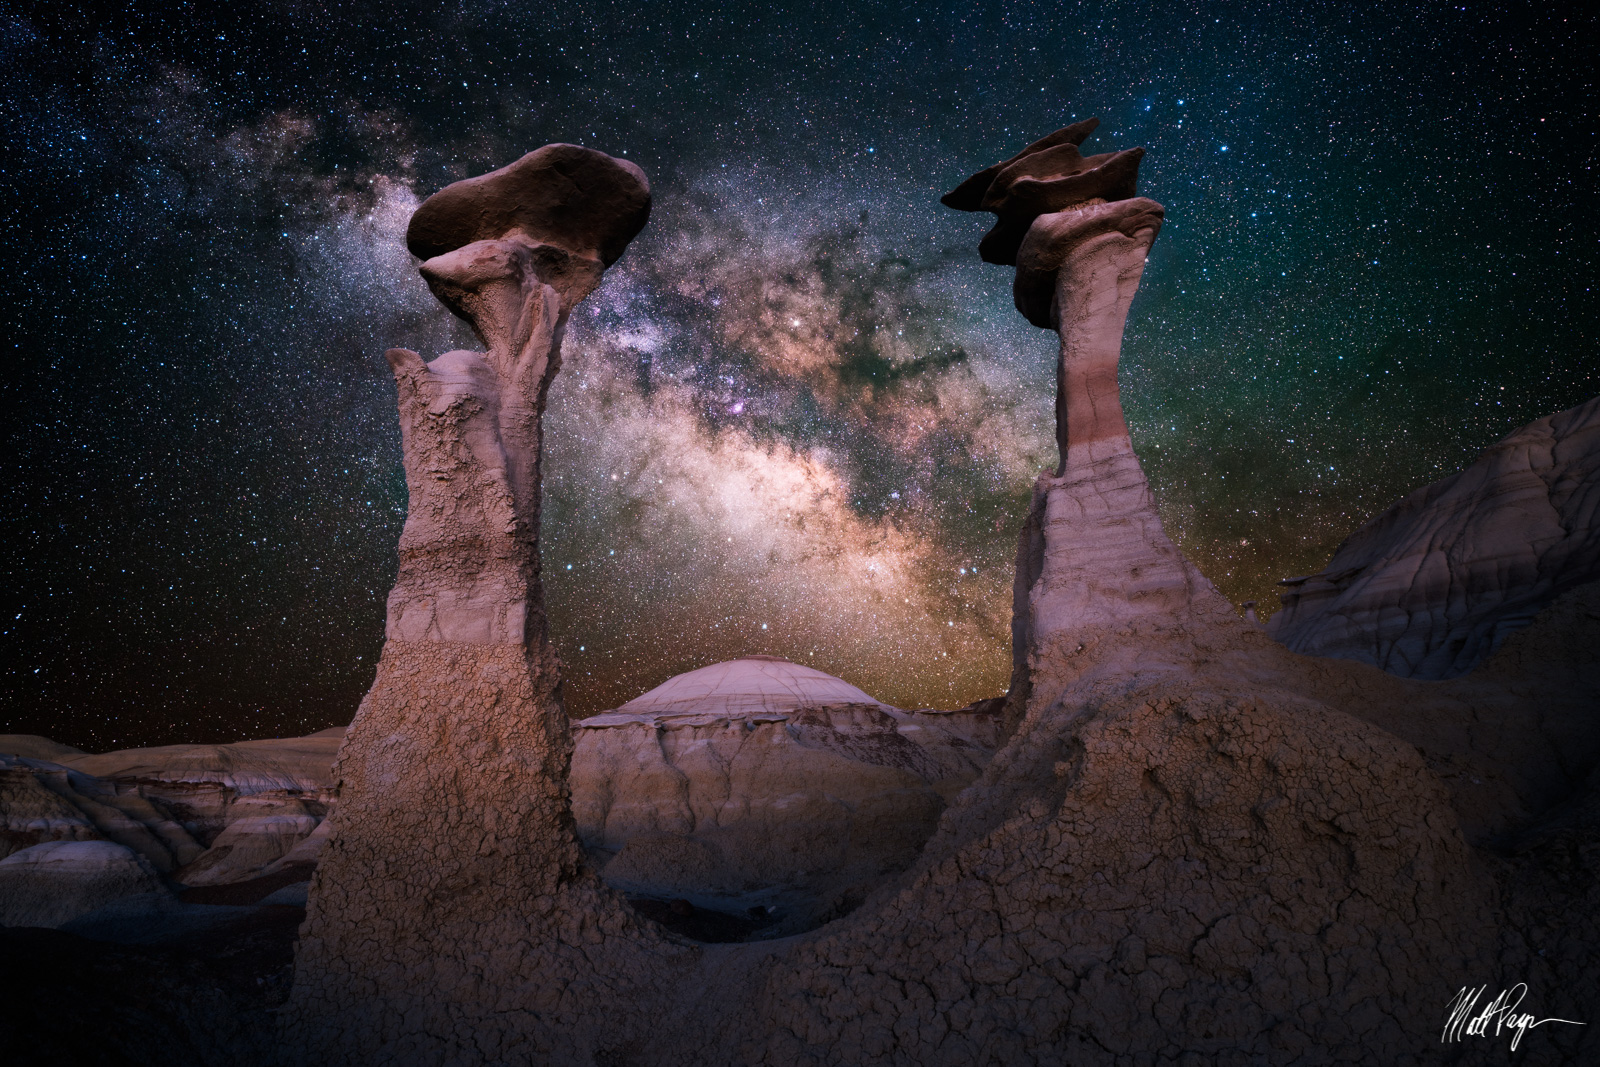 Astro-landscape, Bisti / De-Na-Zin Wilderness, Bisti Badlands, De-Na-Zin Wilderness, Galactic Center, Galaxy, Geology, Hoodoo, Landscape, Milky Way, New Mexico, Night, Nightscape, photo